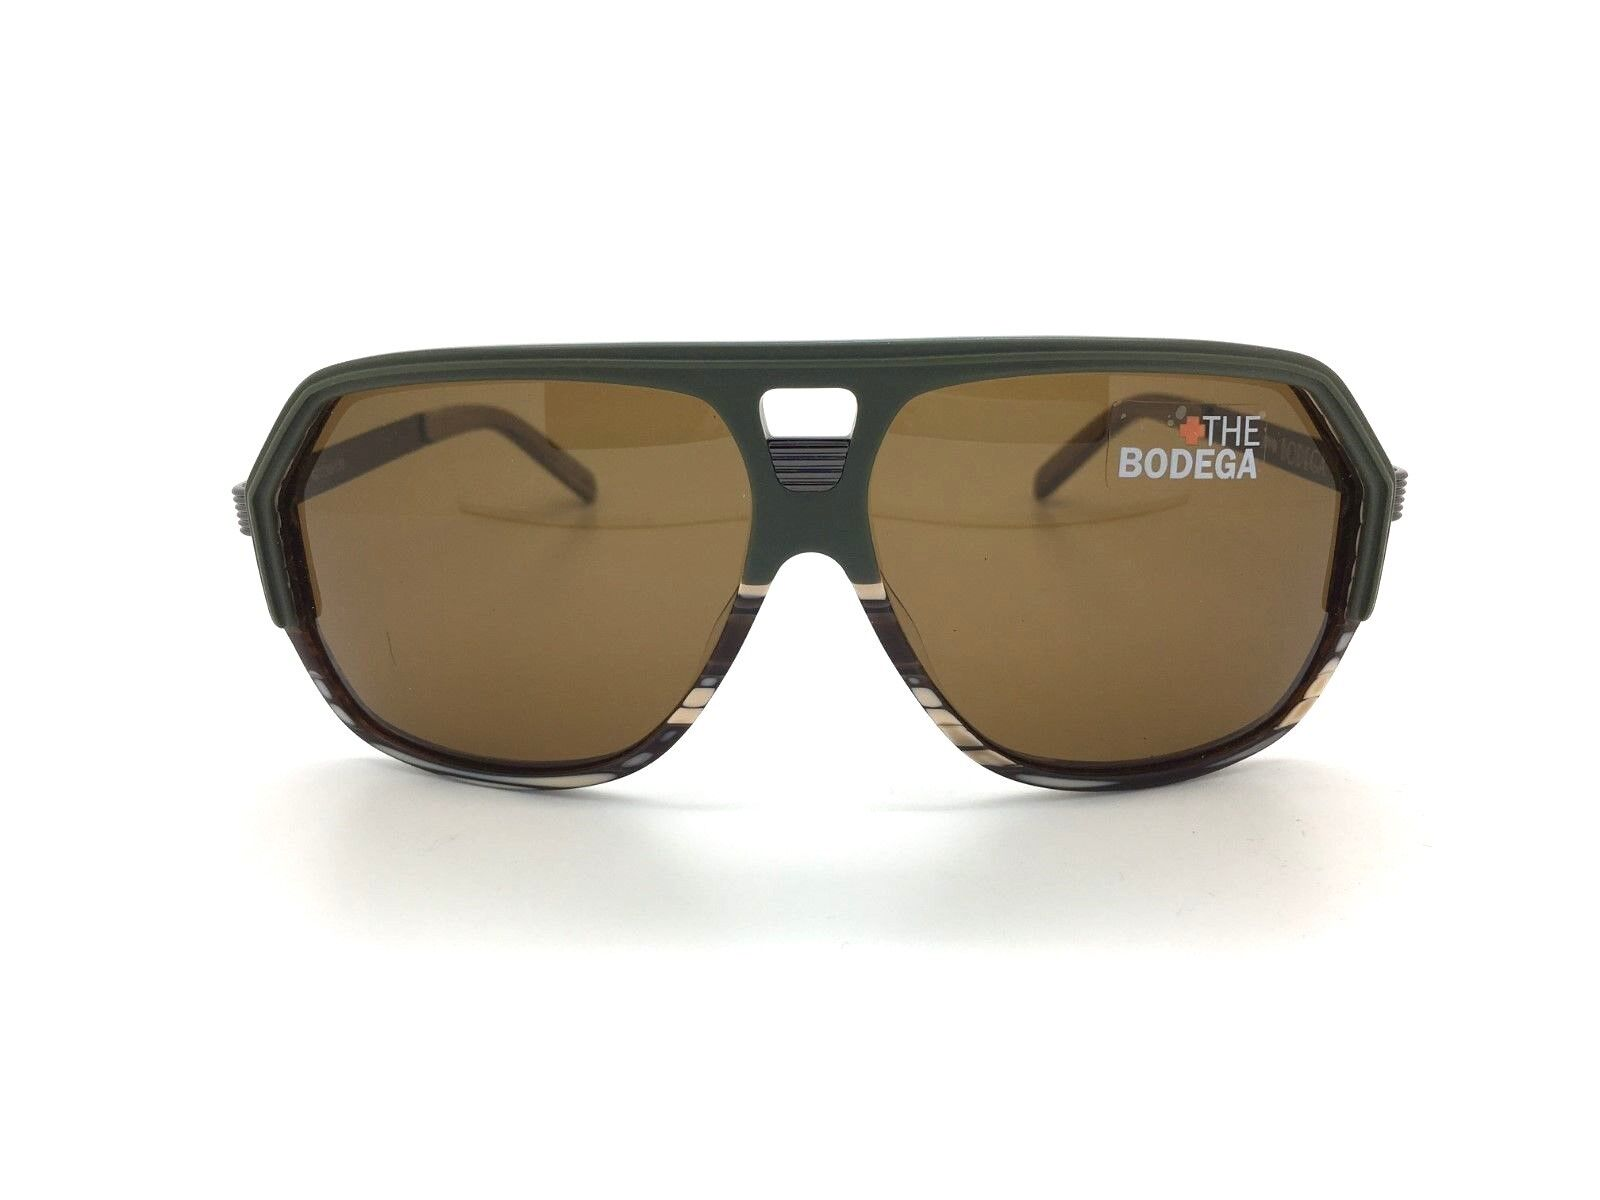 SPY+ Optic  Bodega Sunglasses 670087288069 Green & Brown Horn Frame w Bronze Lens  incredible discounts